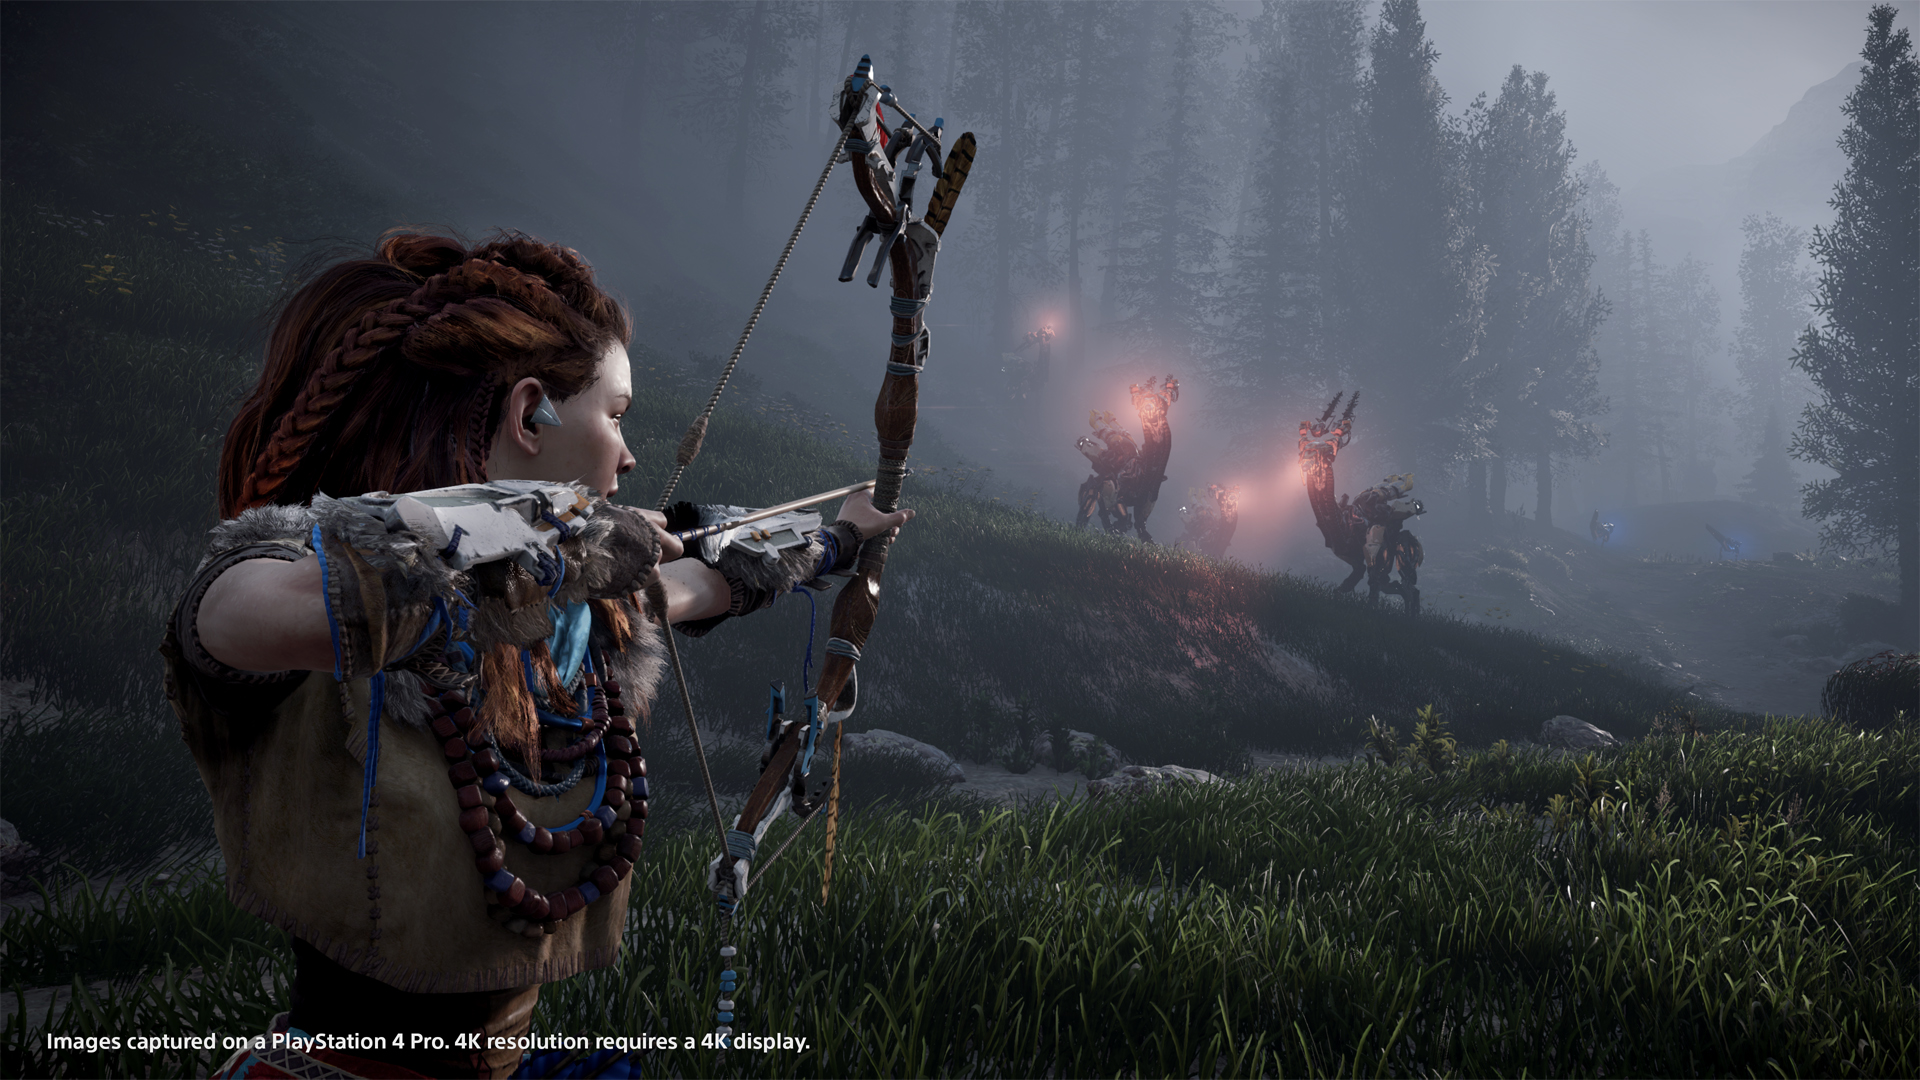 It sounds like we've got a Horizon Zero Dawn sequel to look forward to